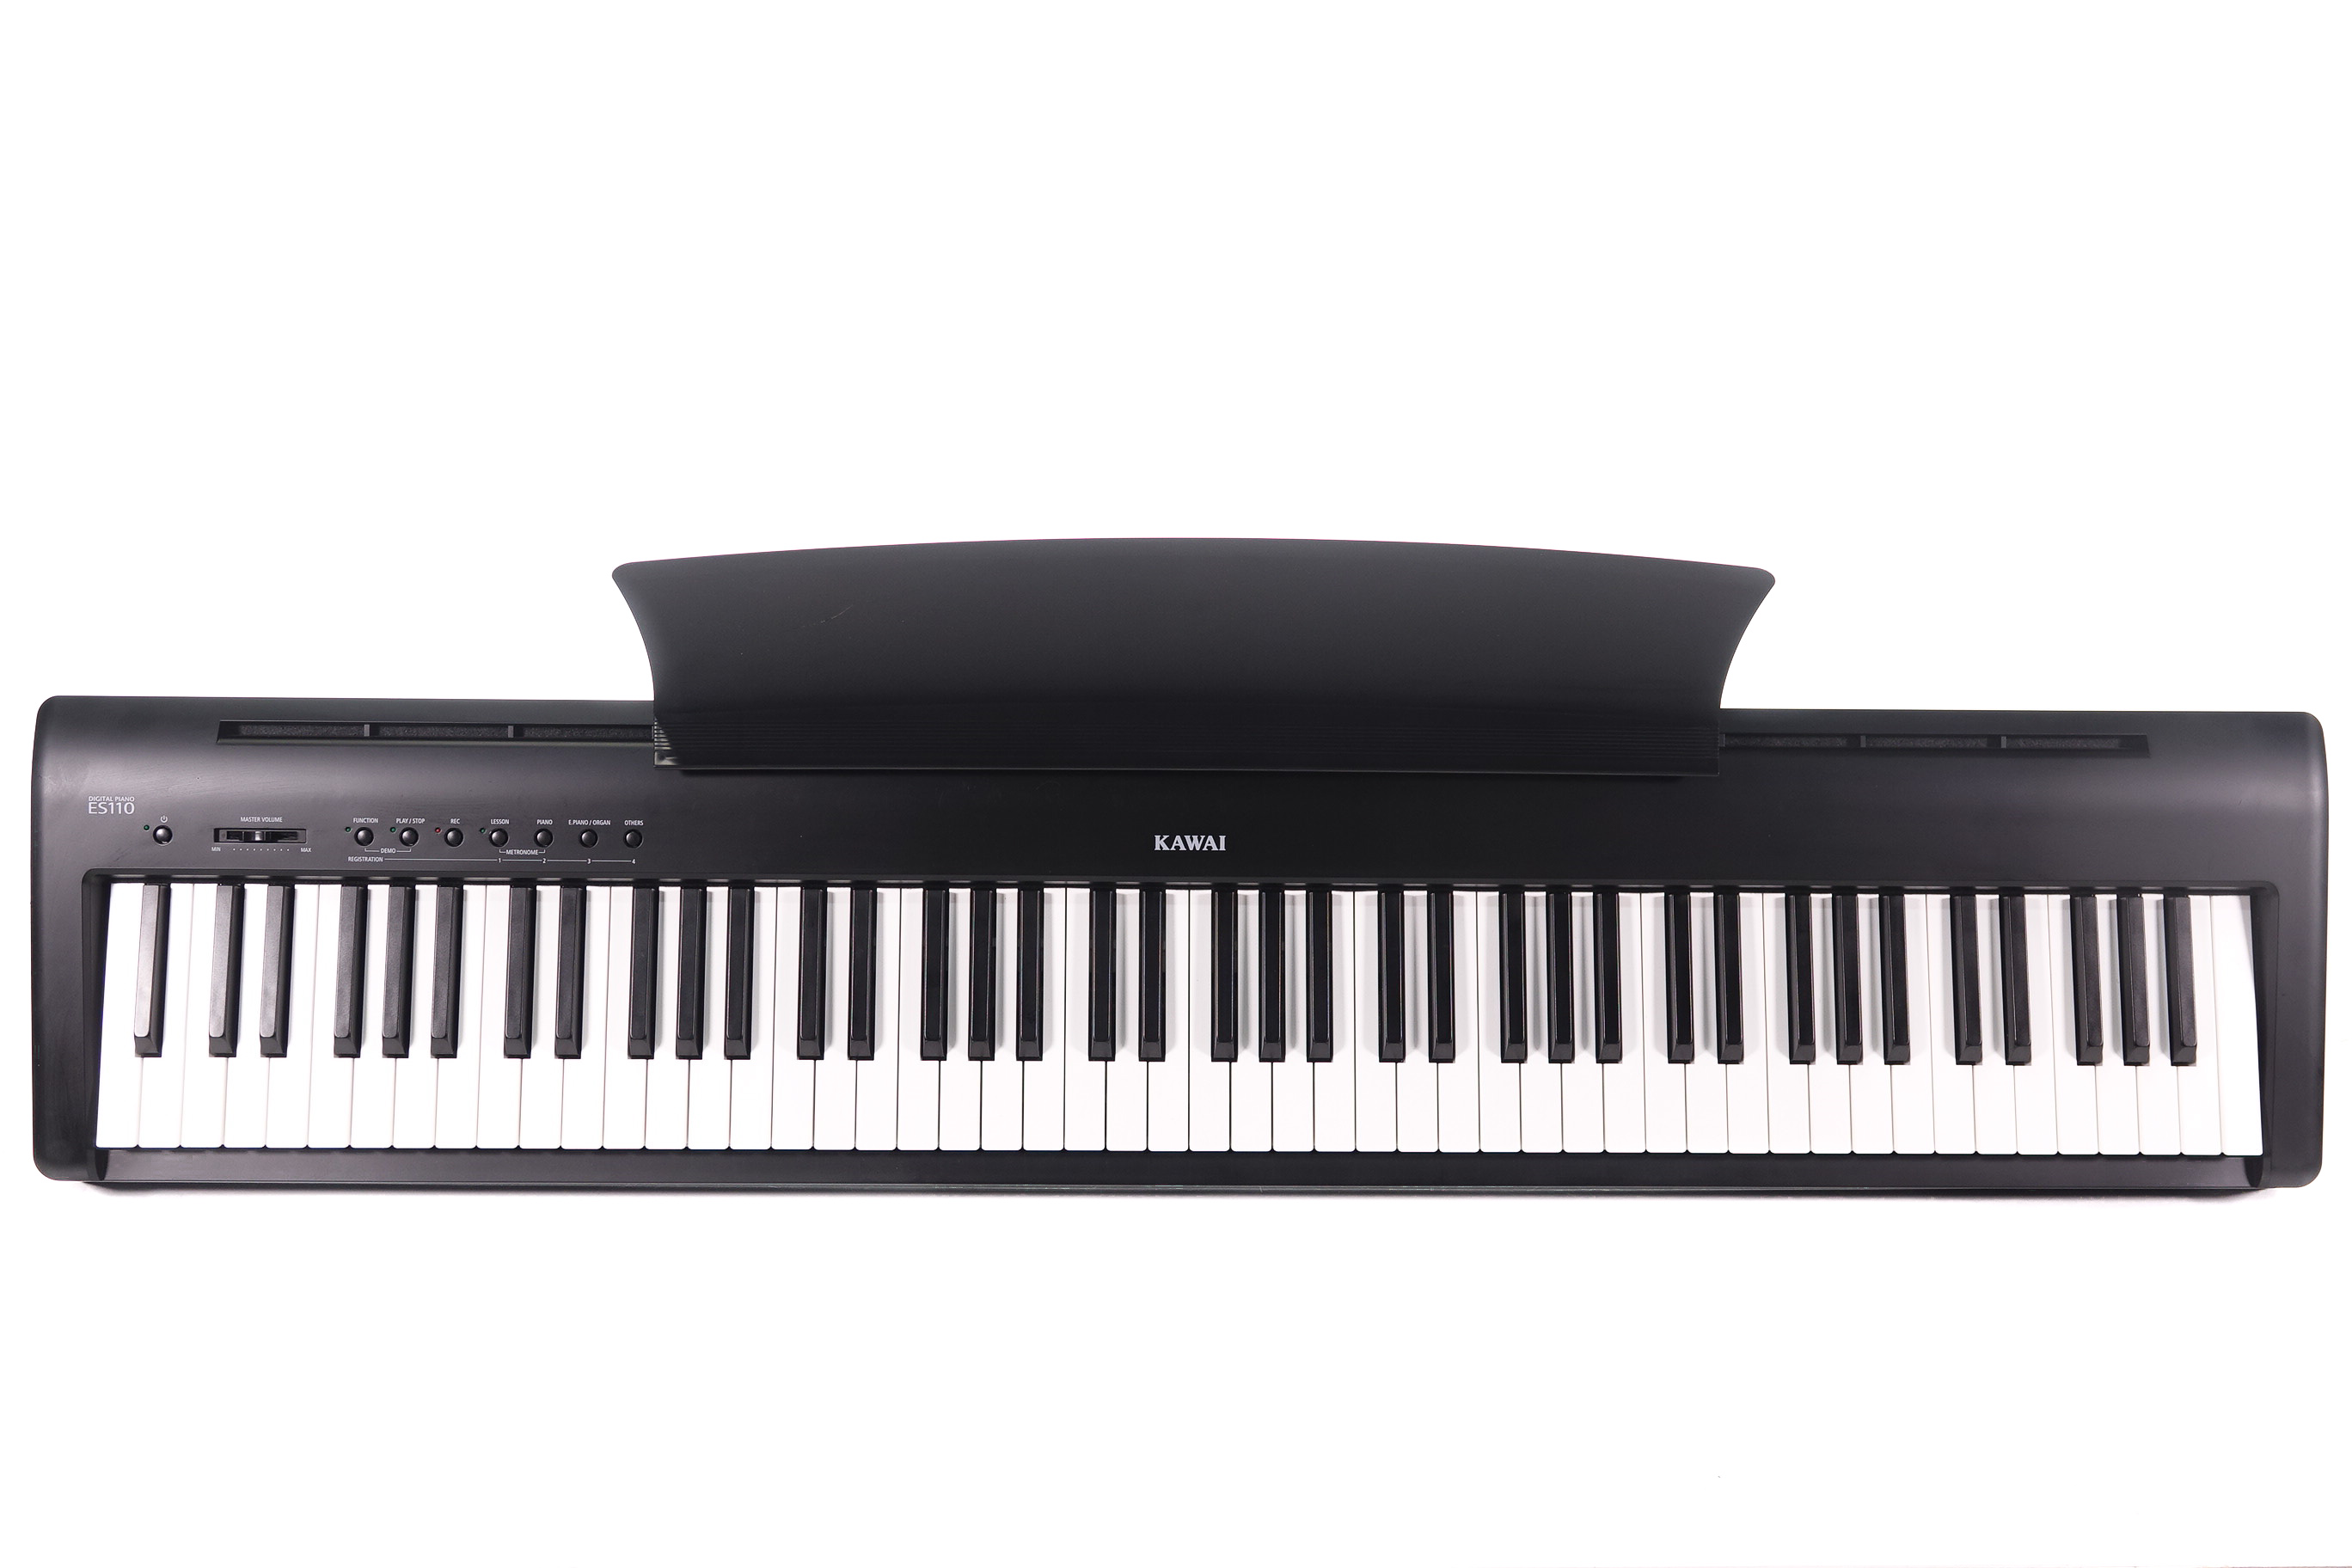 Pre-Loved Kawai Keyboards Rental from $28/month - Musicorp Australia